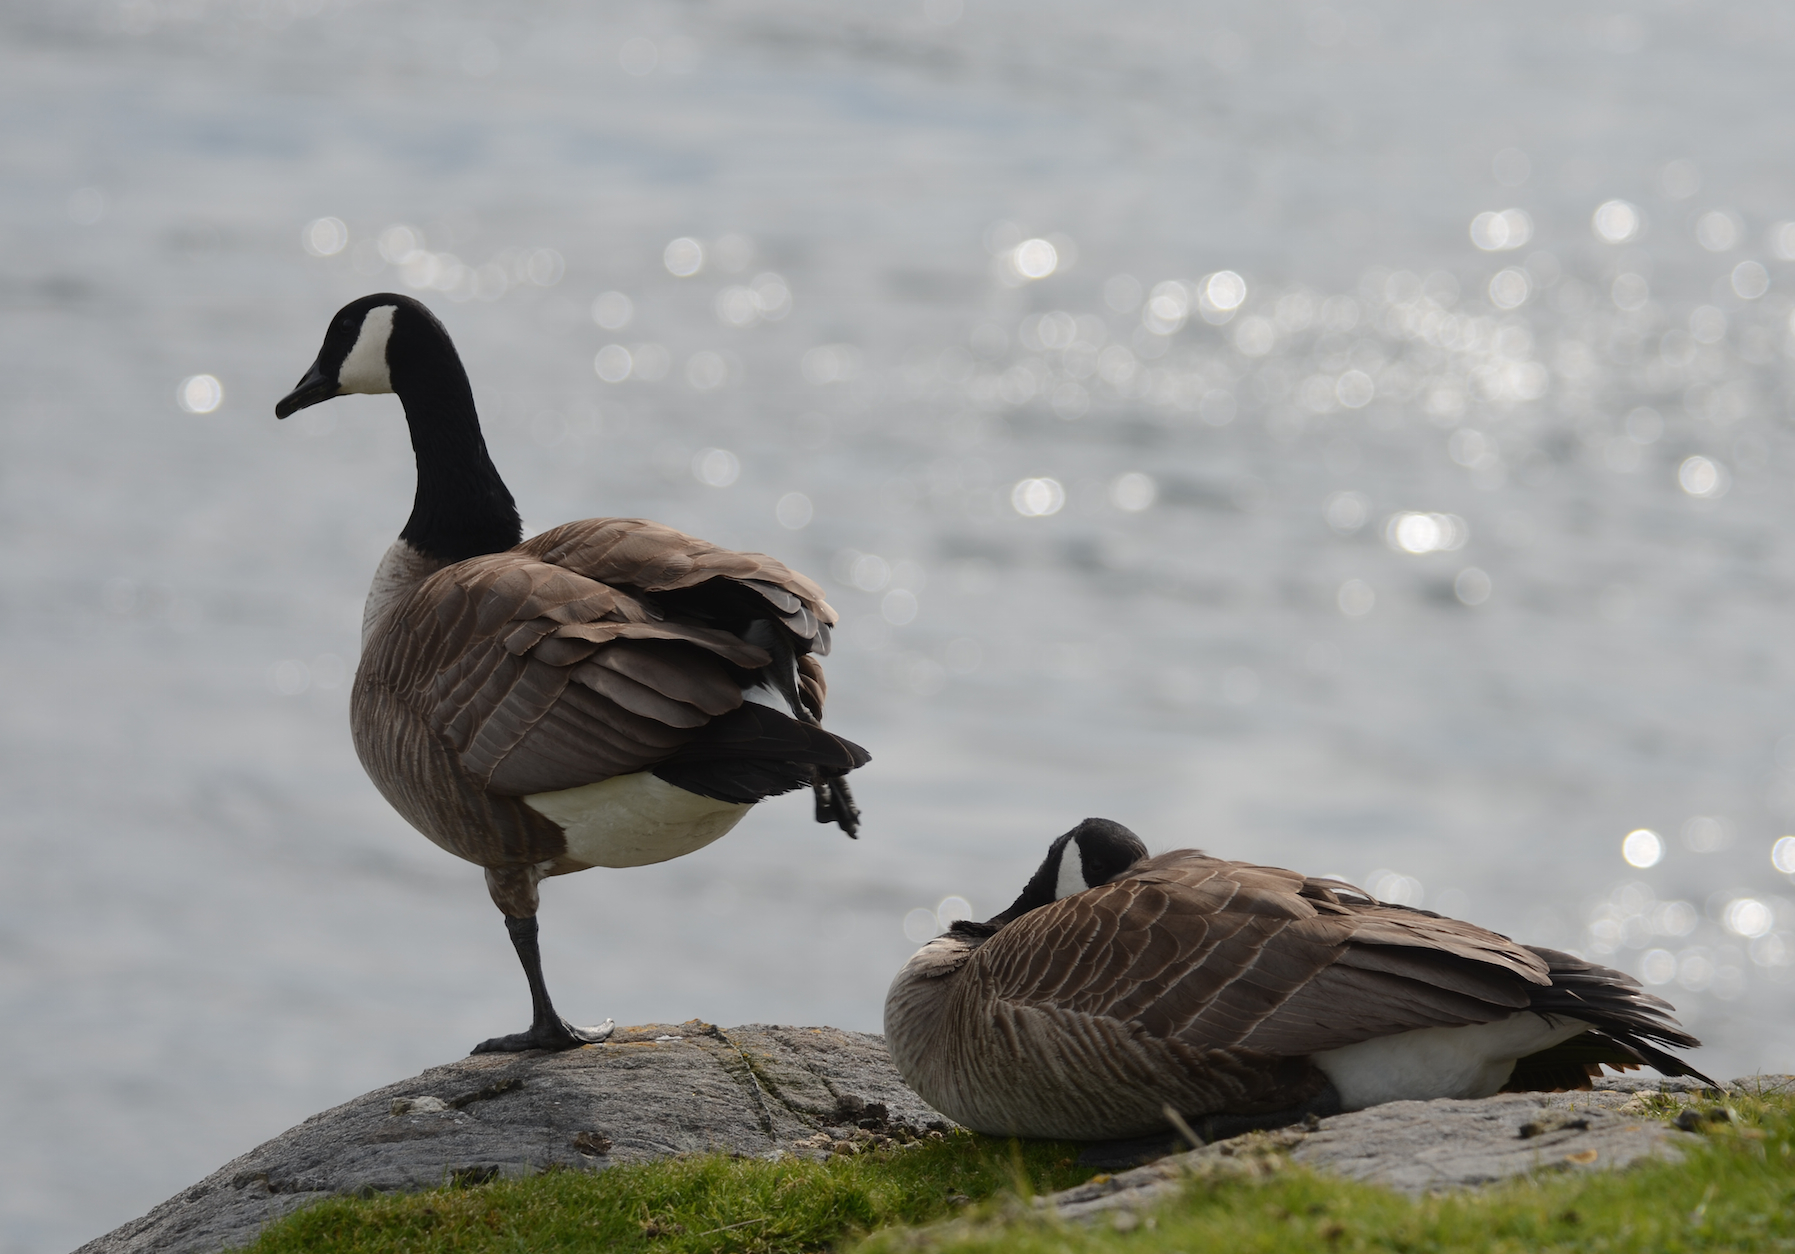 Ubiquitous Canada Geese - photogenic, but a bit hard on the vegetation and other island inhabitants.